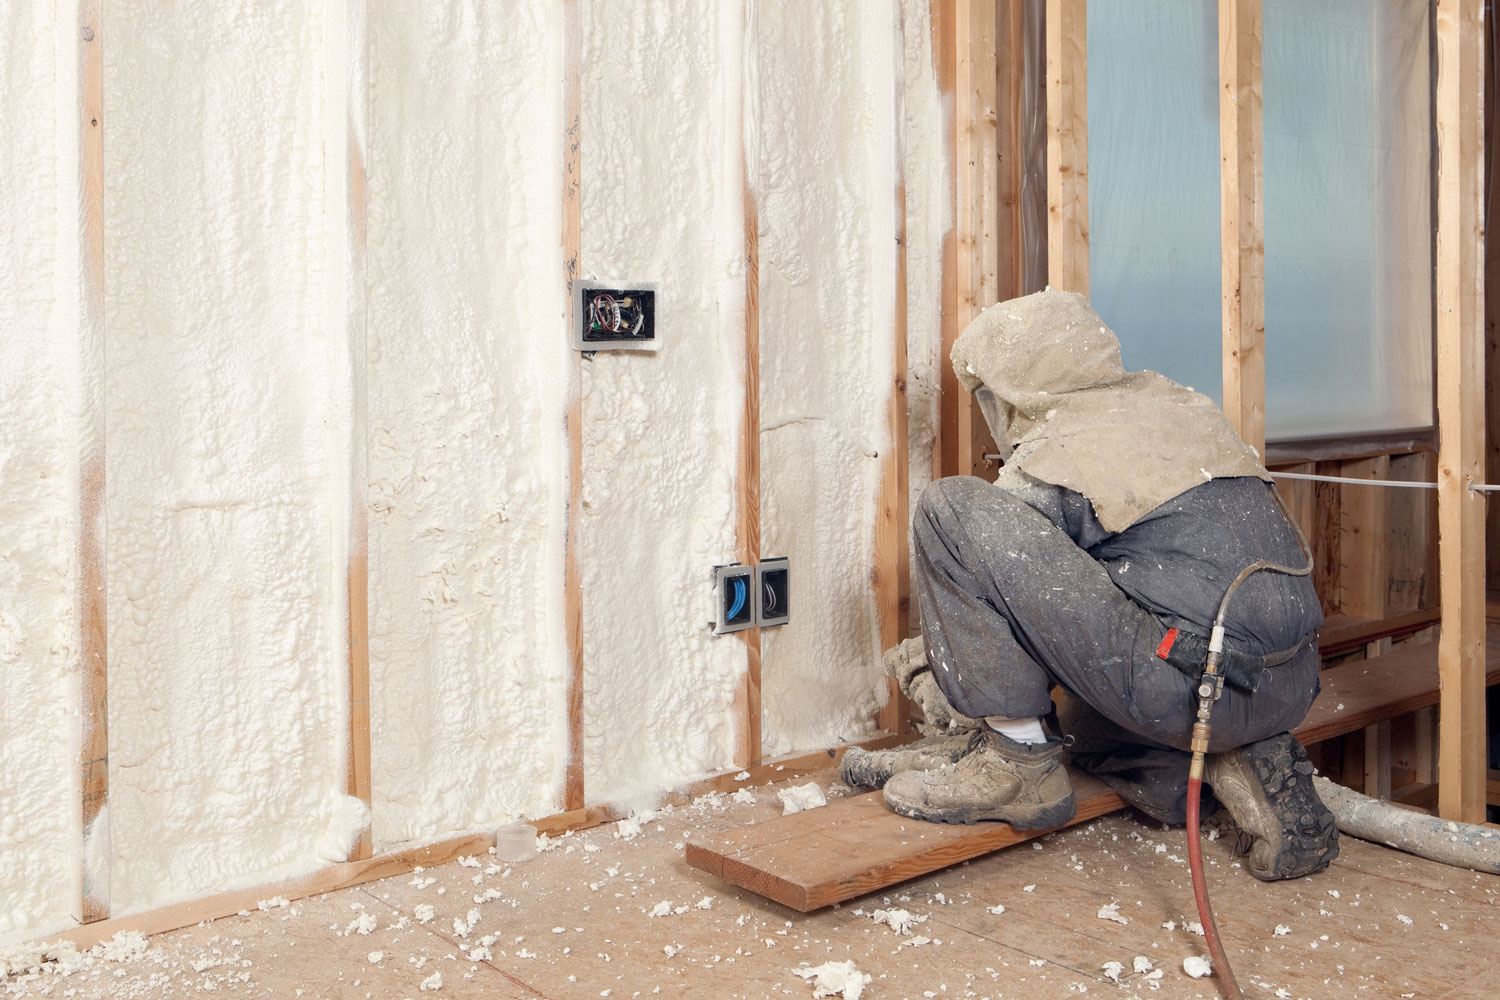 Worker Spraying Expandable Foam Insulation between Wall Studs, Spray Foam Temperature Settings [Cold And Hot Climate Issues]